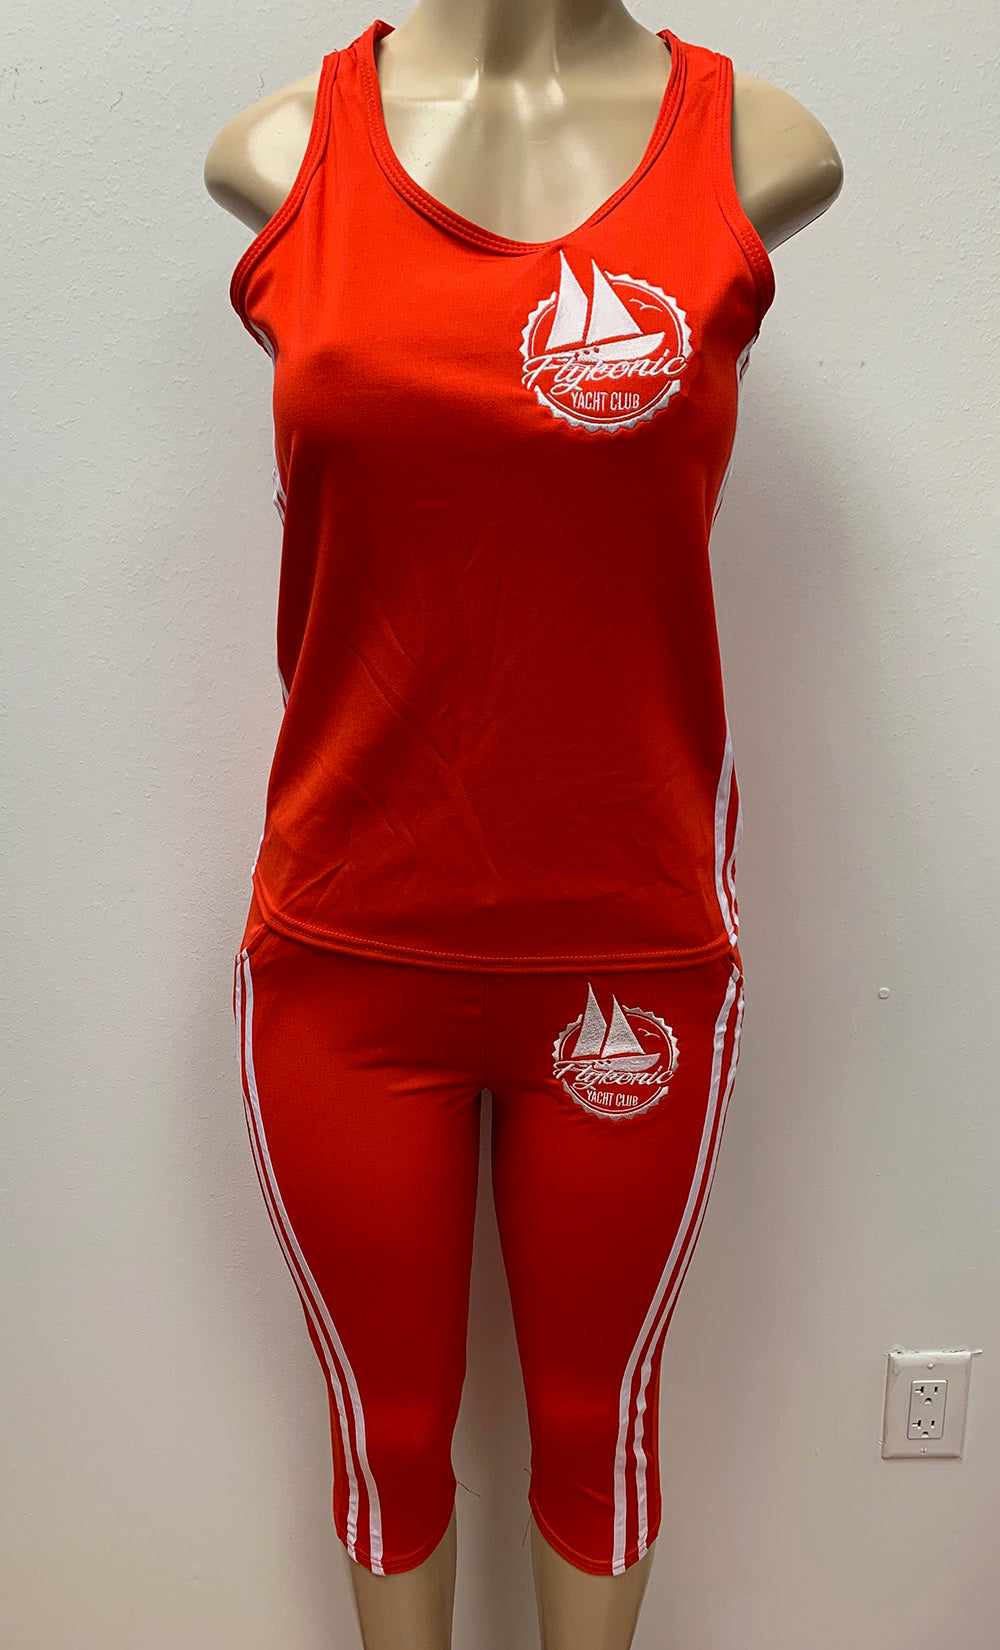 Flykonic Yacht Club - Ladies Fitness Outfit in Red